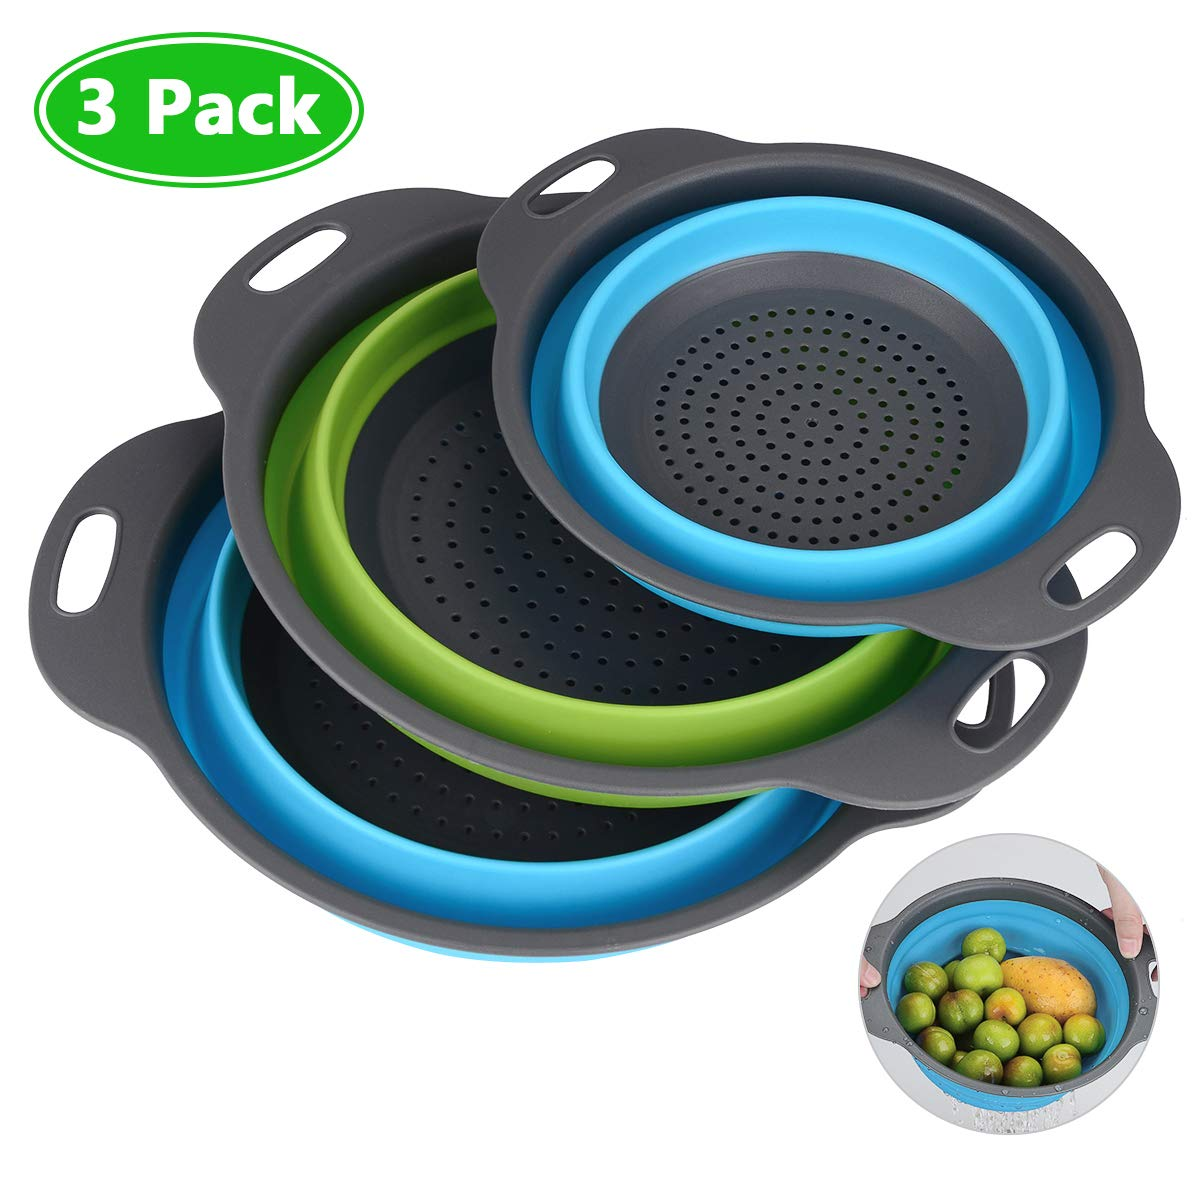 Collapsible Colander, Set of 3 Silicone Kitchen Food Strainers Folding Water Filter Basket 2 Pcs 4 Quart and 1 Pc 2 Quart Collapsible Strainer Set for Draining Pasta, Vegetable and Fruit (Blue, Green)